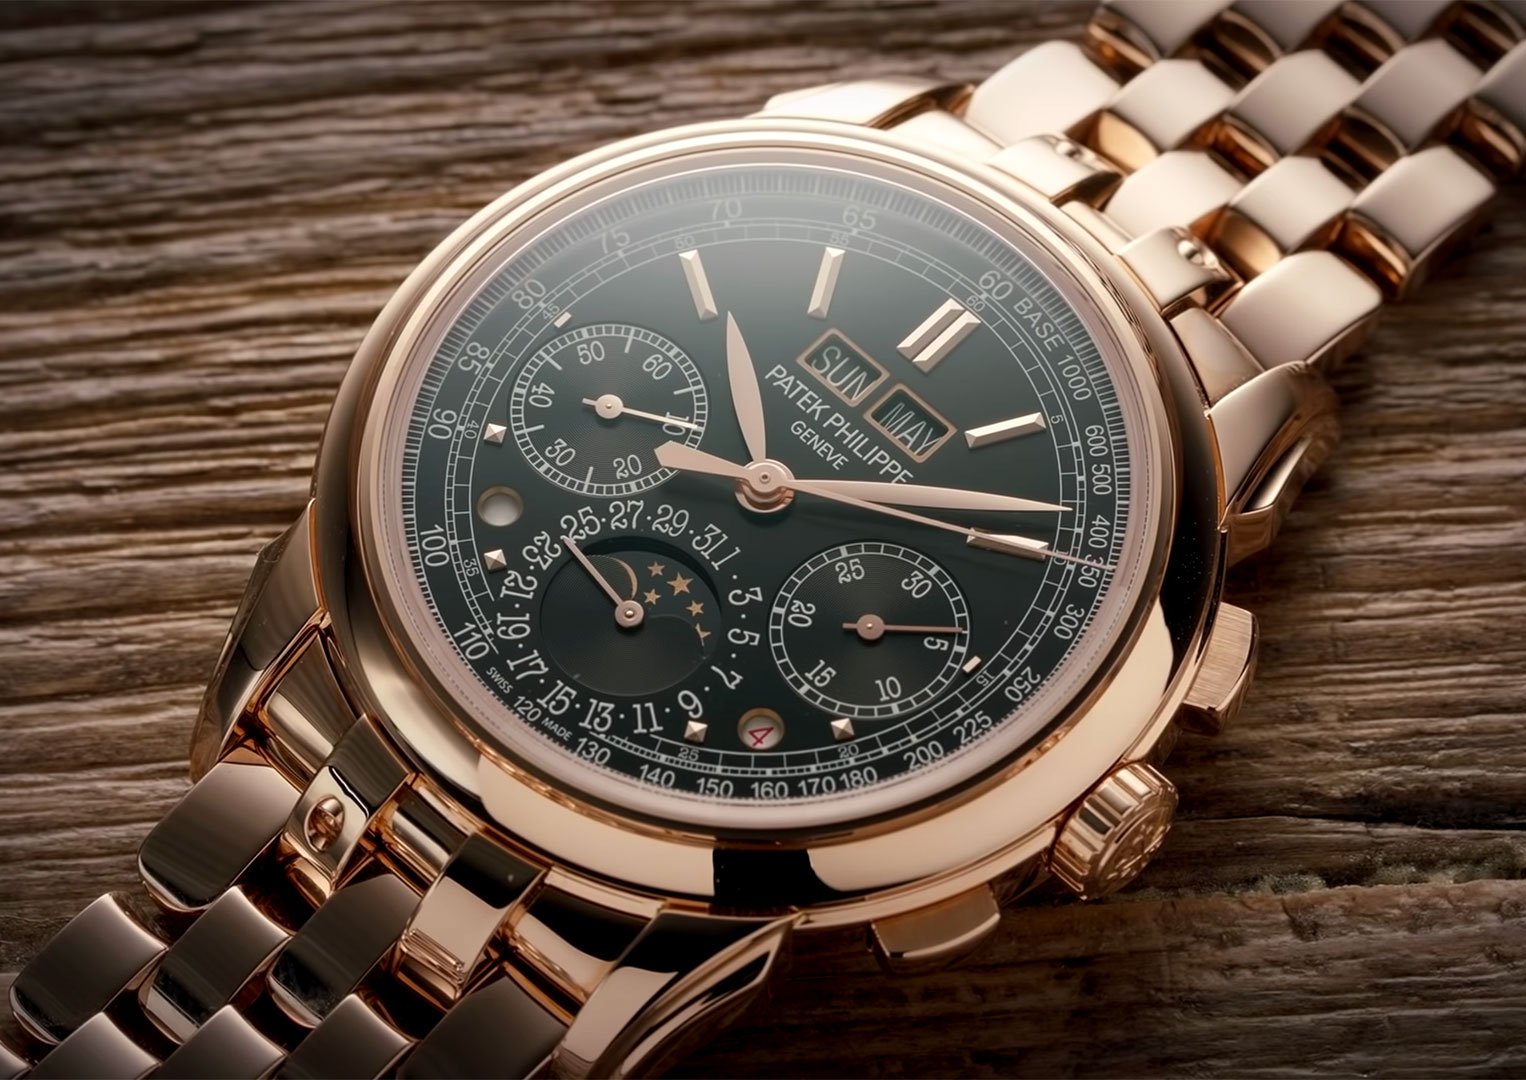 The Calatrava is Patek Philippe's most affordable watch series